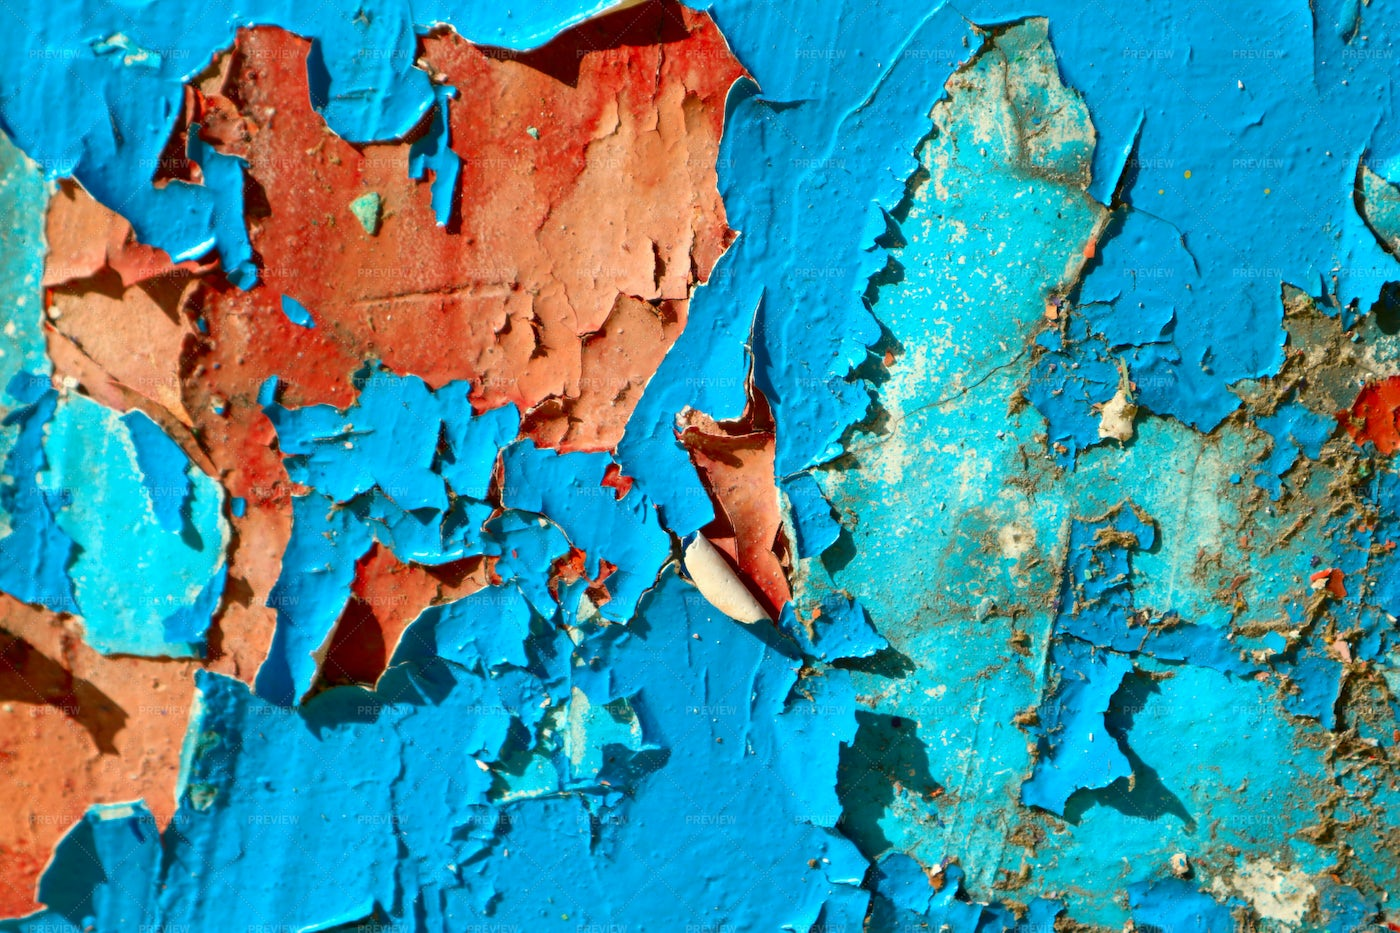 Cracked And Peeling Paint: Stock Photos